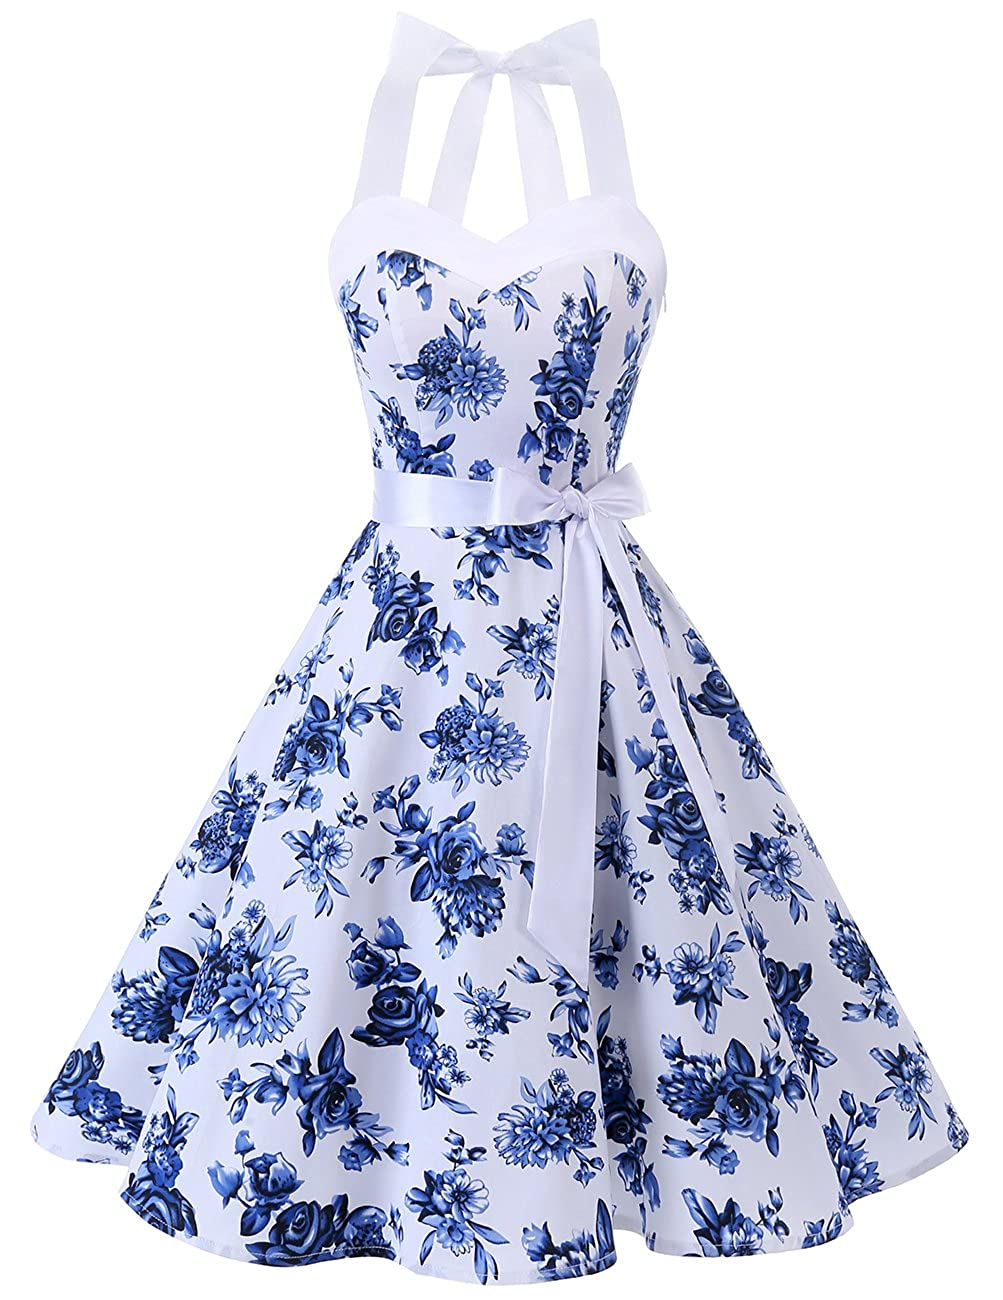 TALLA XXL. Dresstells® Halter 50s Rockabilly Polka Dots Audrey Dress Retro Cocktail Dress White Blue Flower XXL